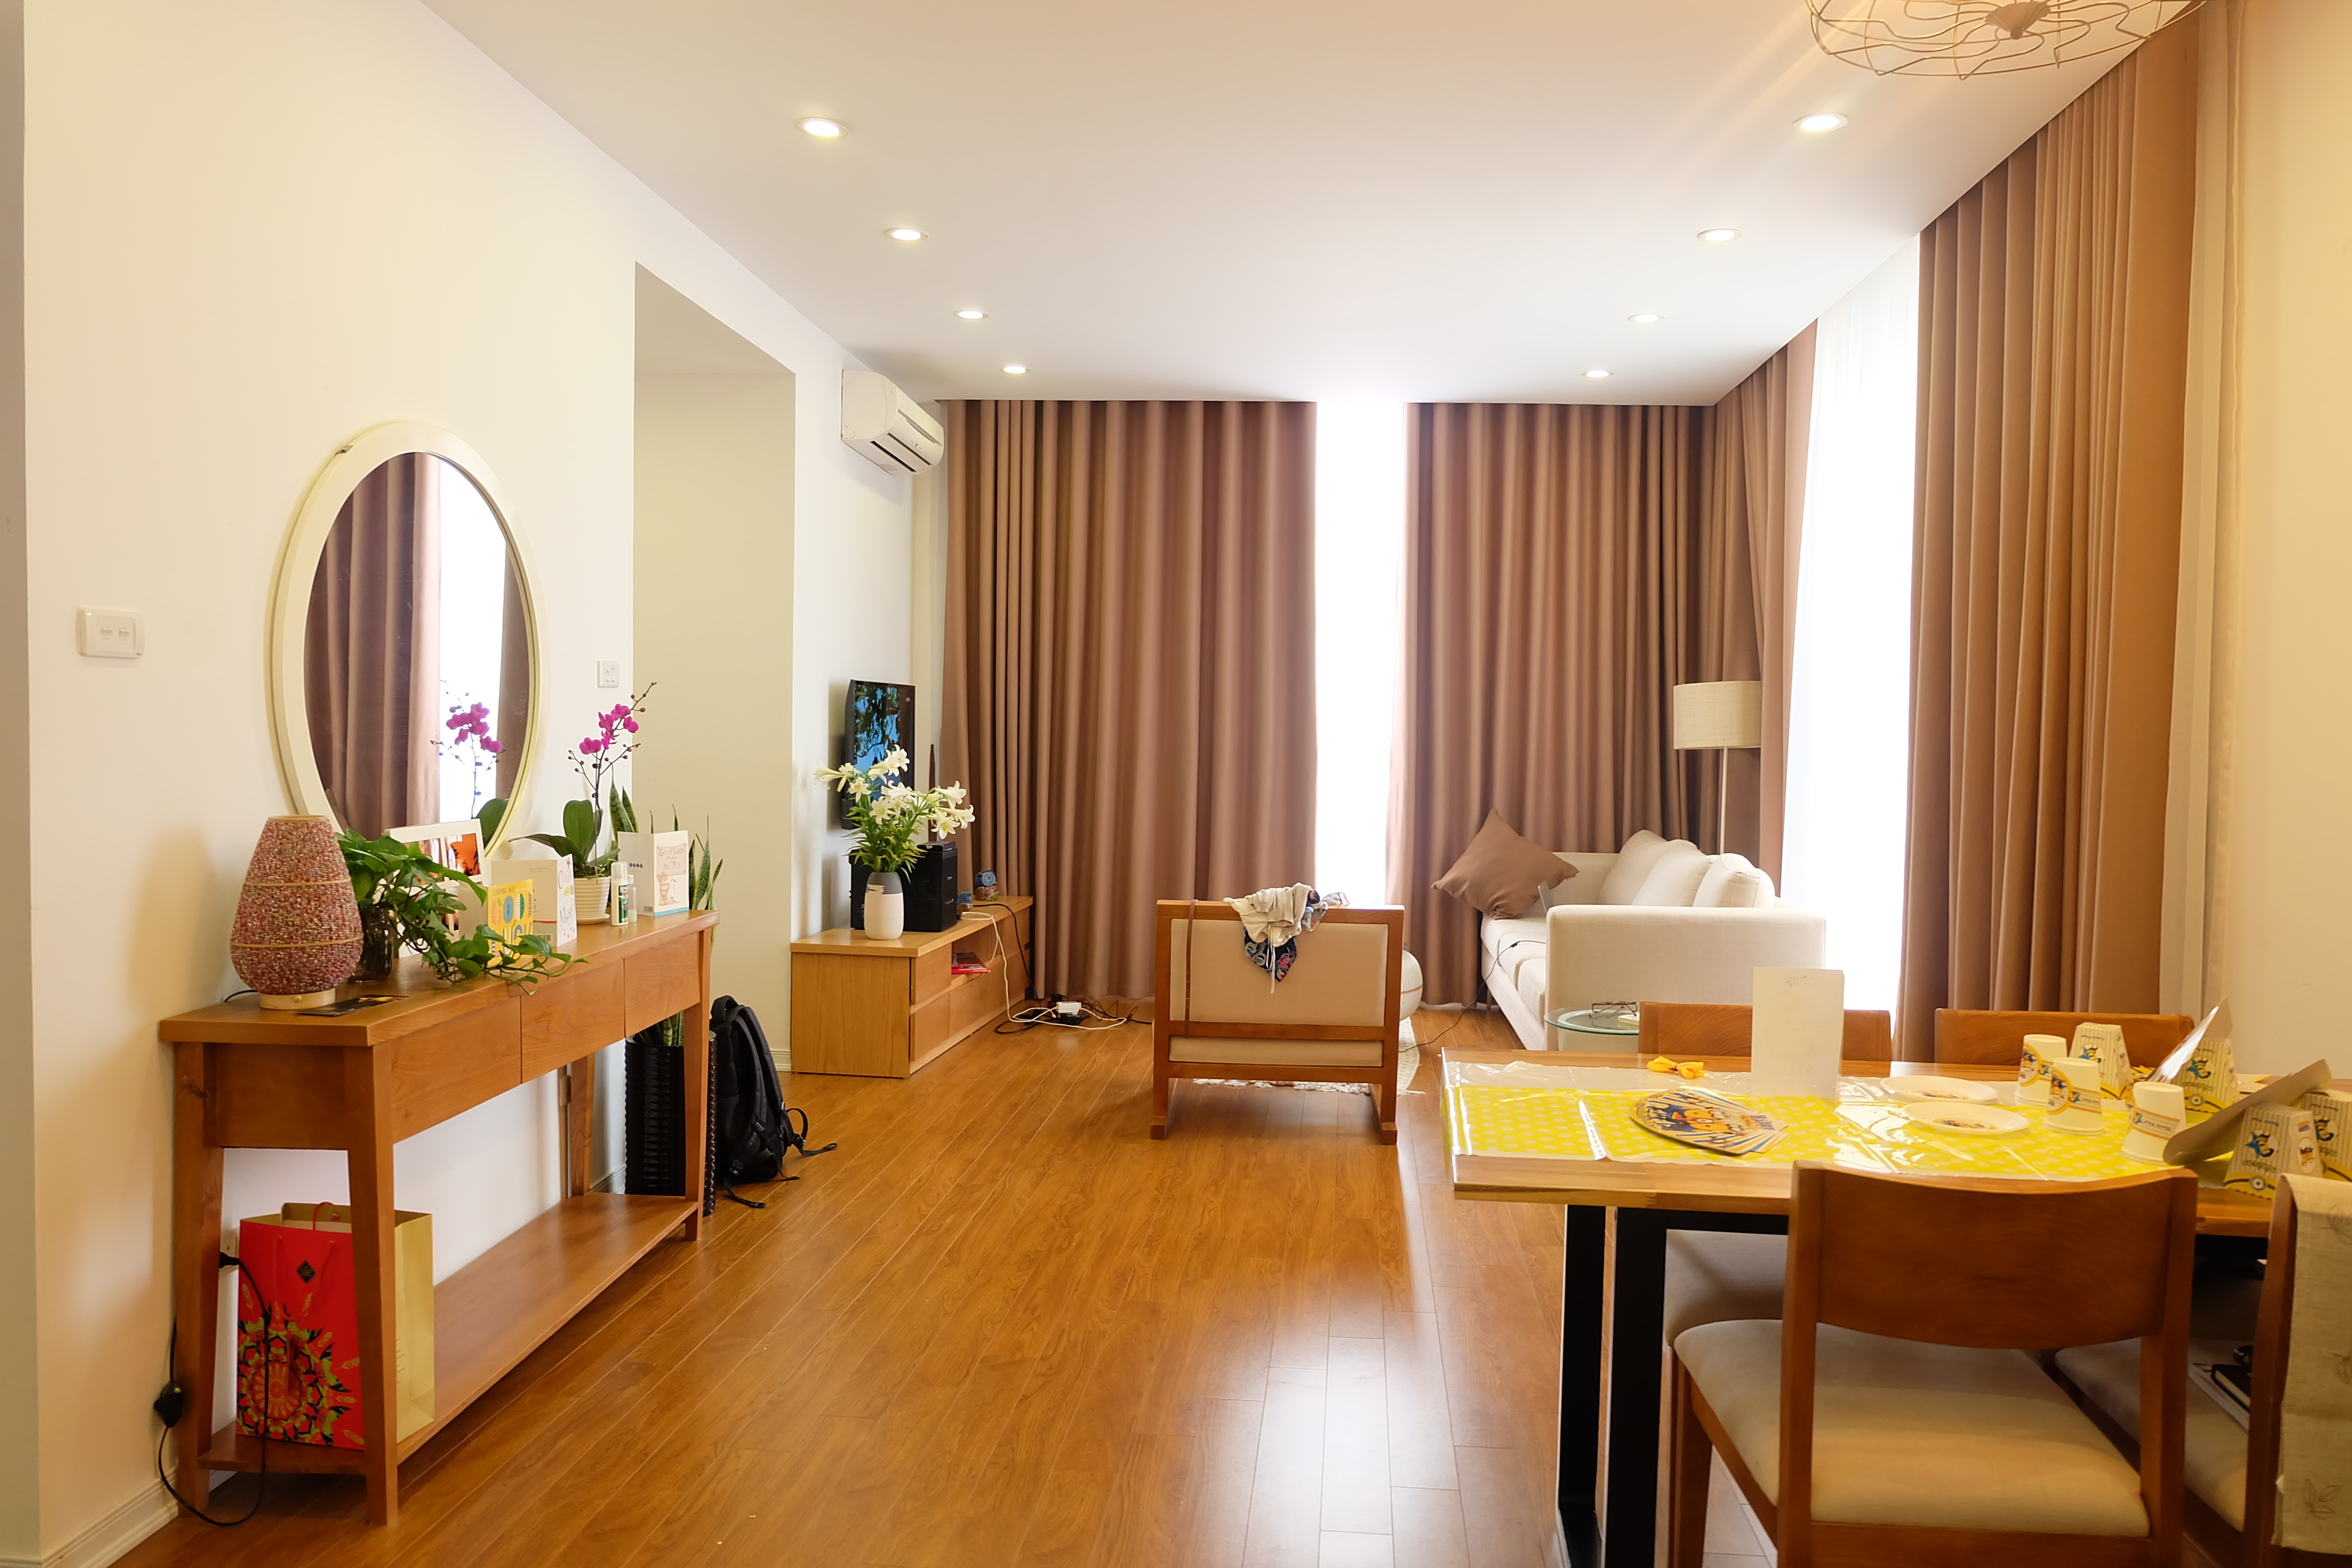 Lakeview 2 Bedroom Serviced Apartment In Xuan Dieu For Rent